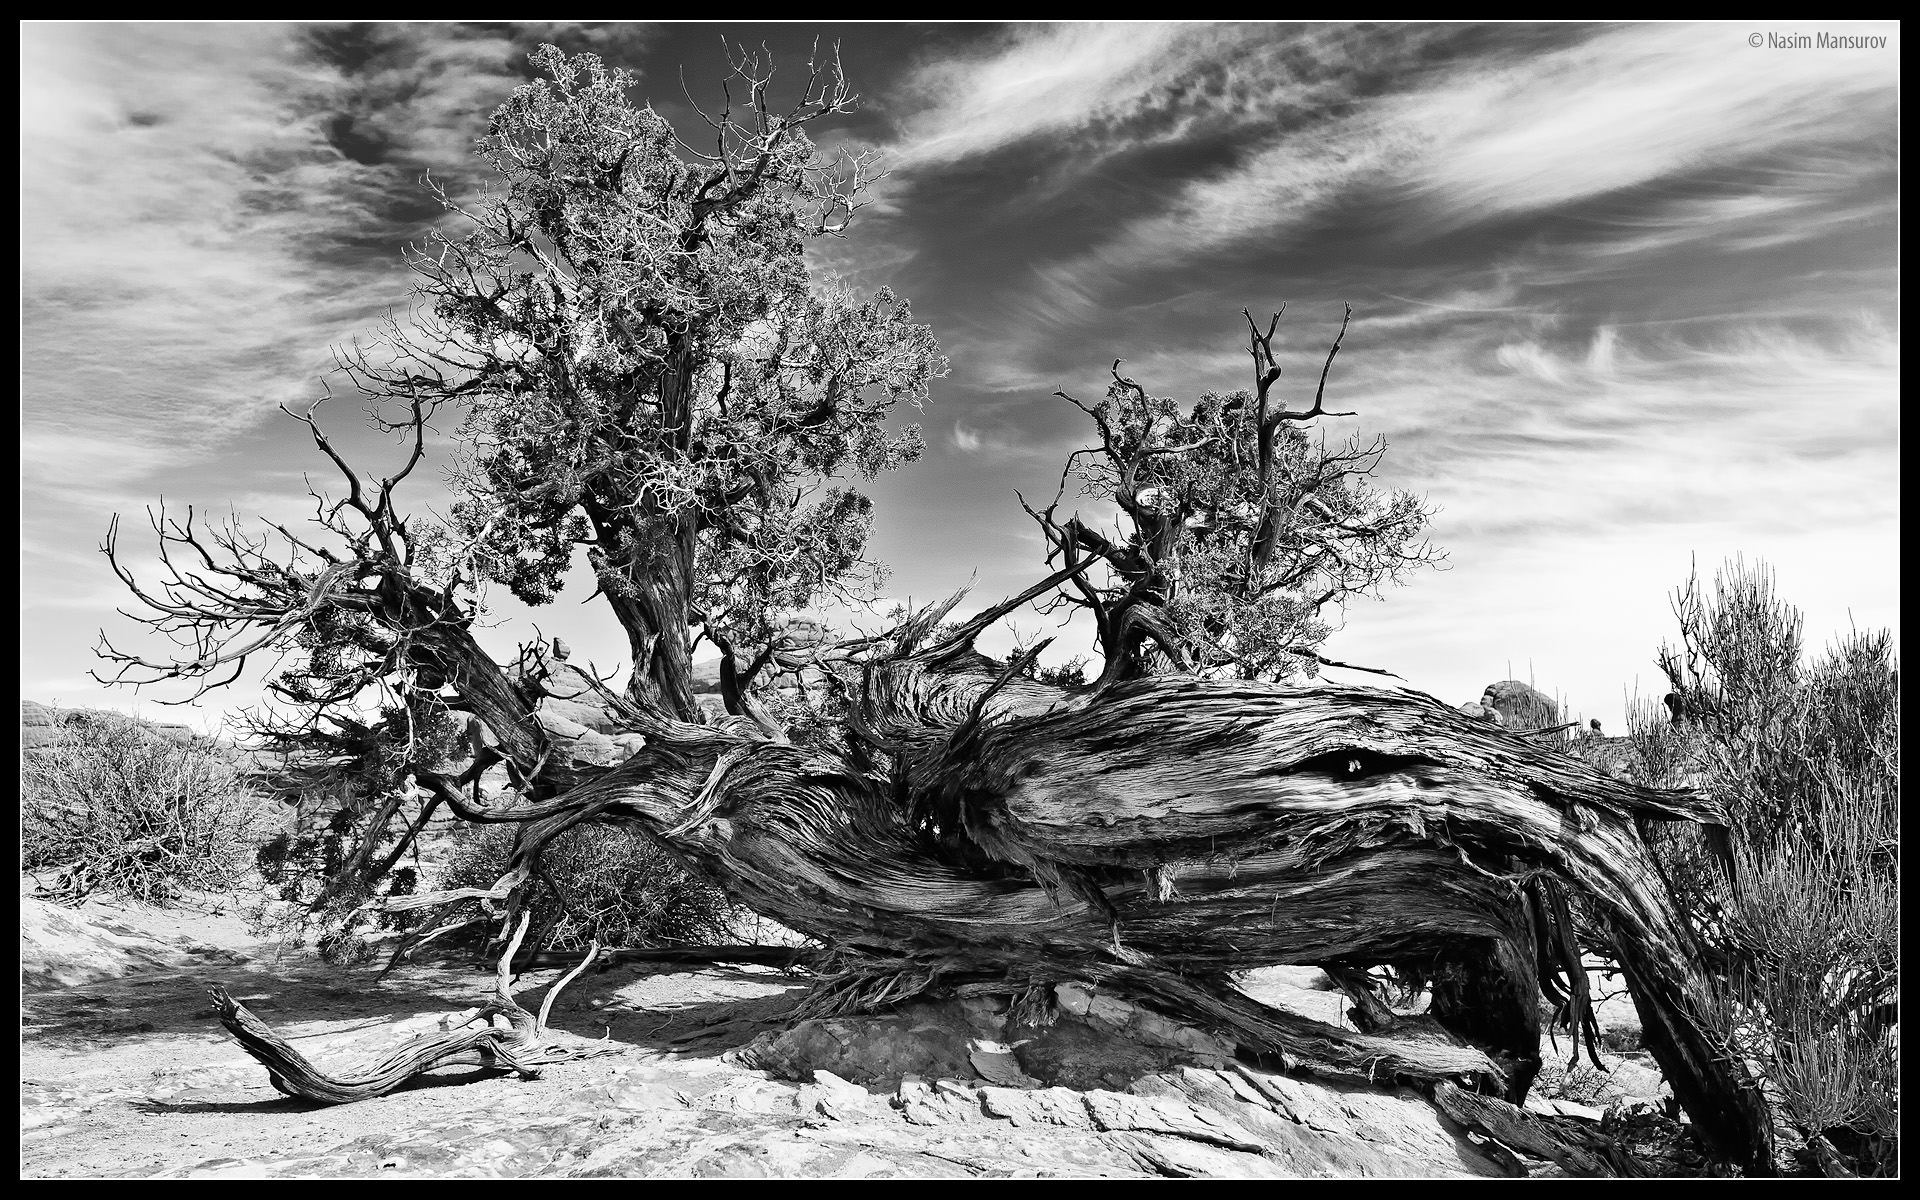 How To Take Black And White Photography